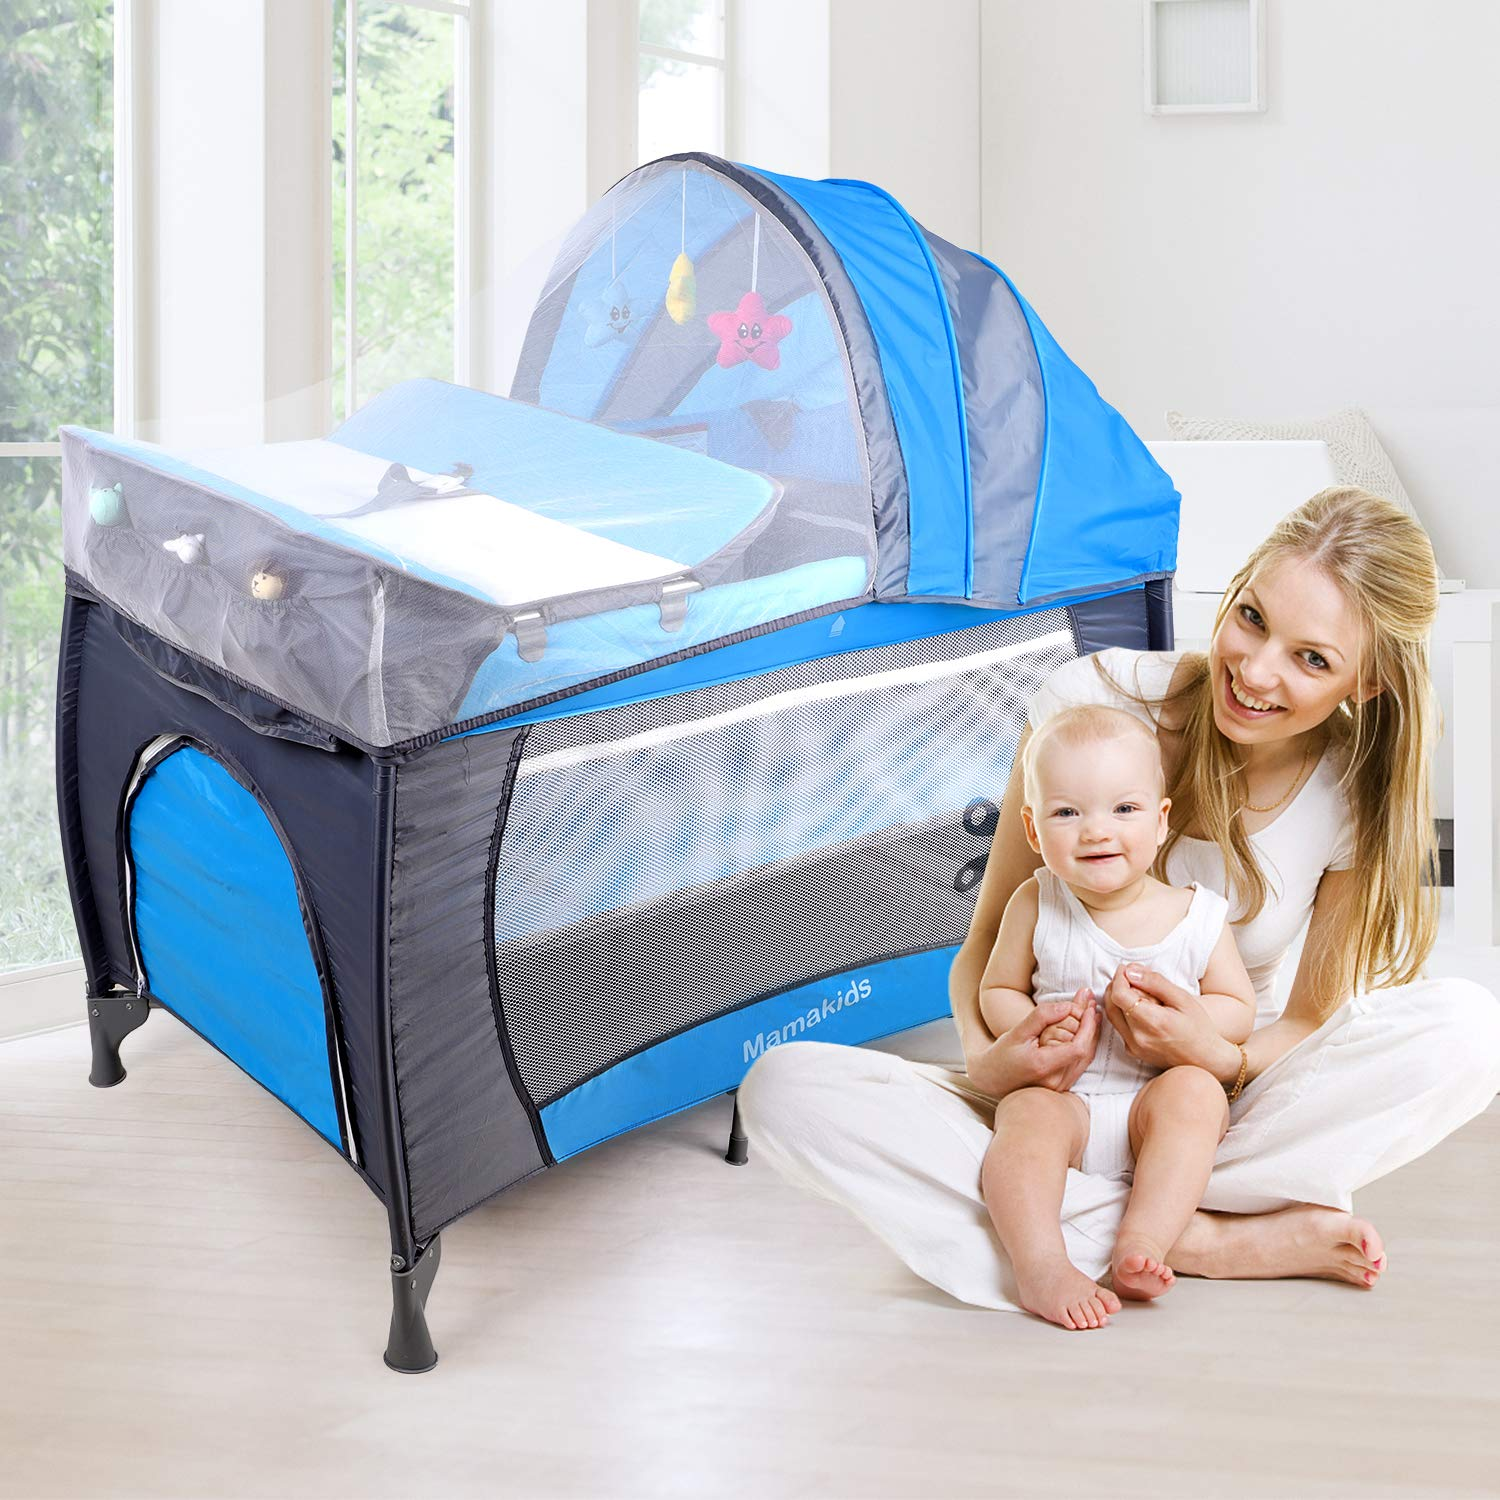 Baby Crib Travel Cot Bed Playpen with Toys /& Music,Nursery Center for Boys and Girls with Bassinet Changing Table Wheels and Brake Foldable and Portable Design with Carry Bag